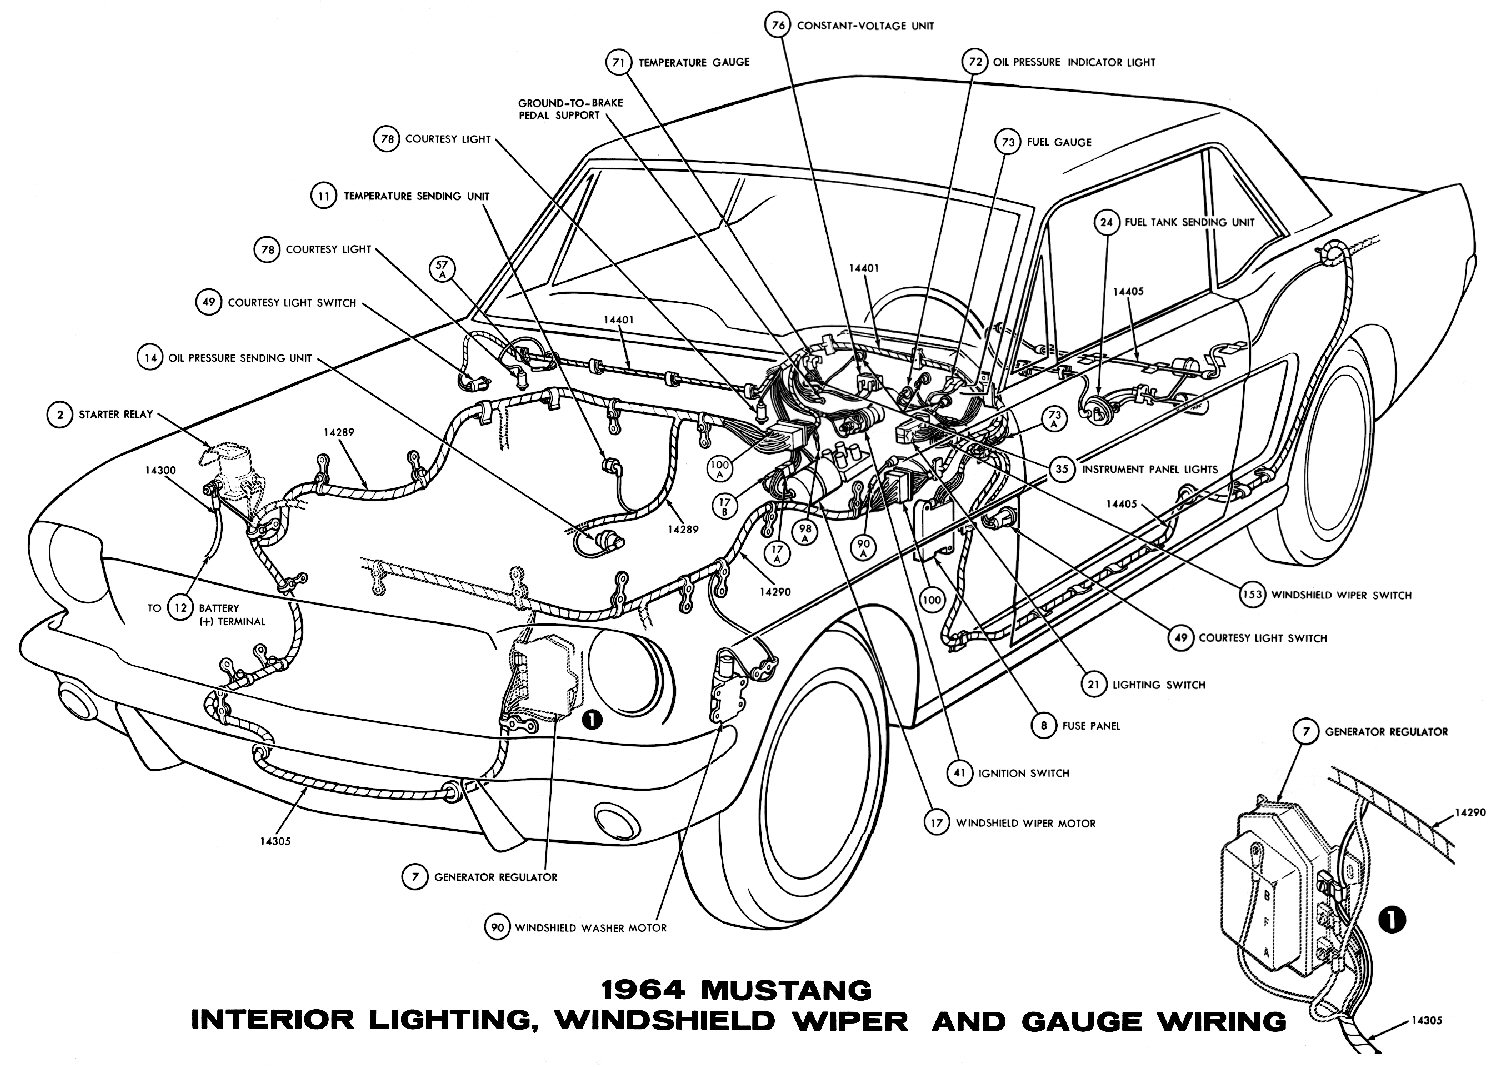 1964 mustang wiring diagrams auto electrical wiring diagram Bass Guitar Pickup Wiring Diagram Two 1964 mustang wiring diagrams